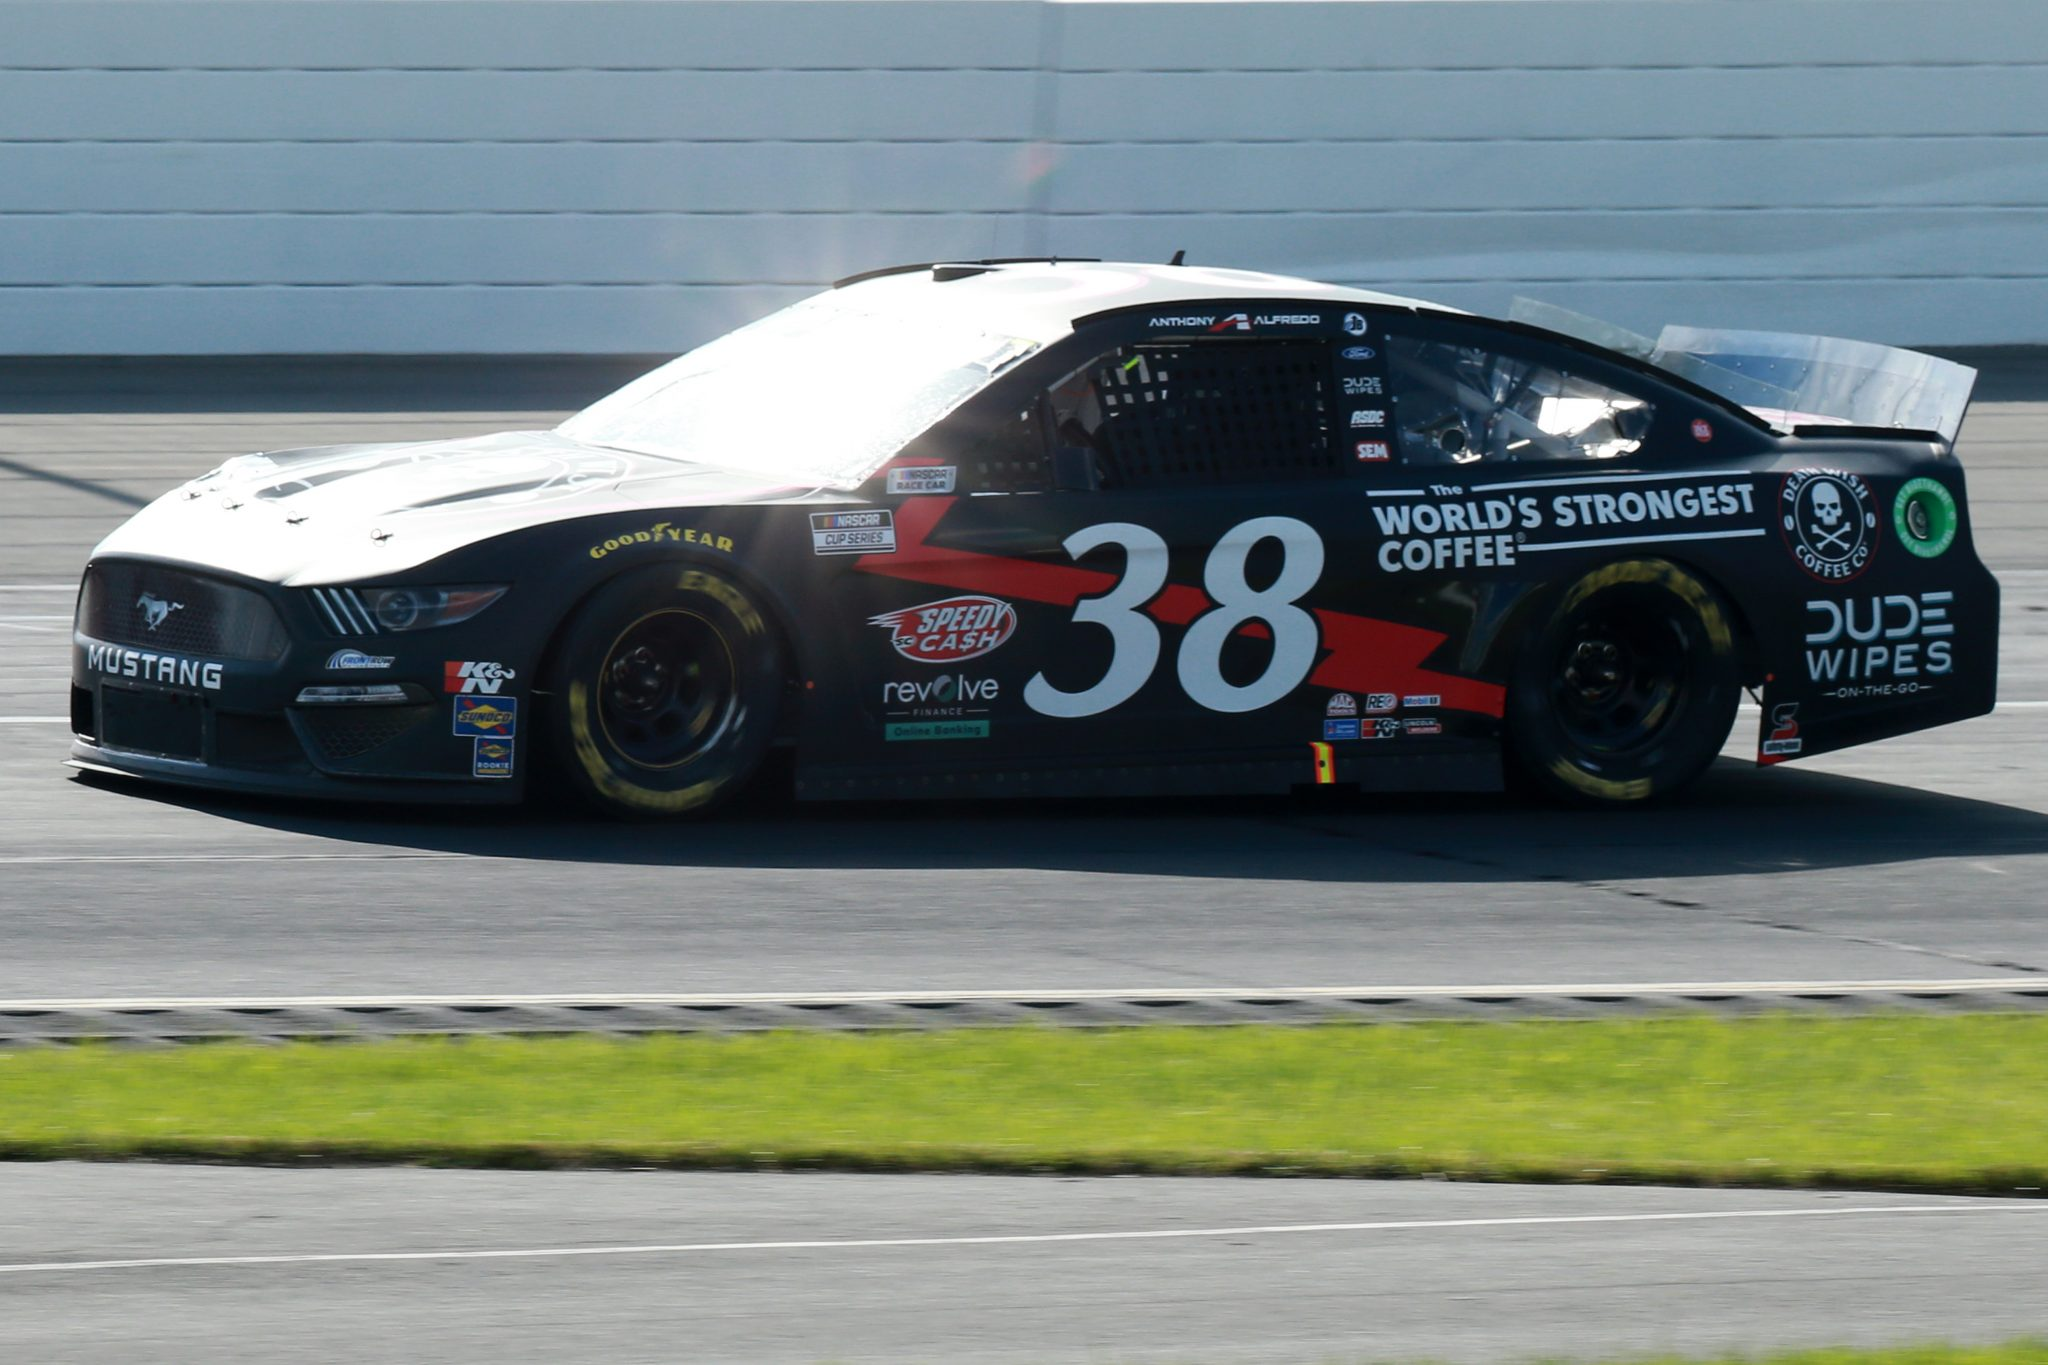 LONG POND, PENNSYLVANIA - JUNE 27: Anthony Alfredo, driver of the #38 Death Wish Coffee Ford, drives during the NASCAR Cup Series Explore the Pocono Mountains 350 at Pocono Raceway on June 27, 2021 in Long Pond, Pennsylvania. (Photo by Sean Gardner/Getty Images) | Getty Images